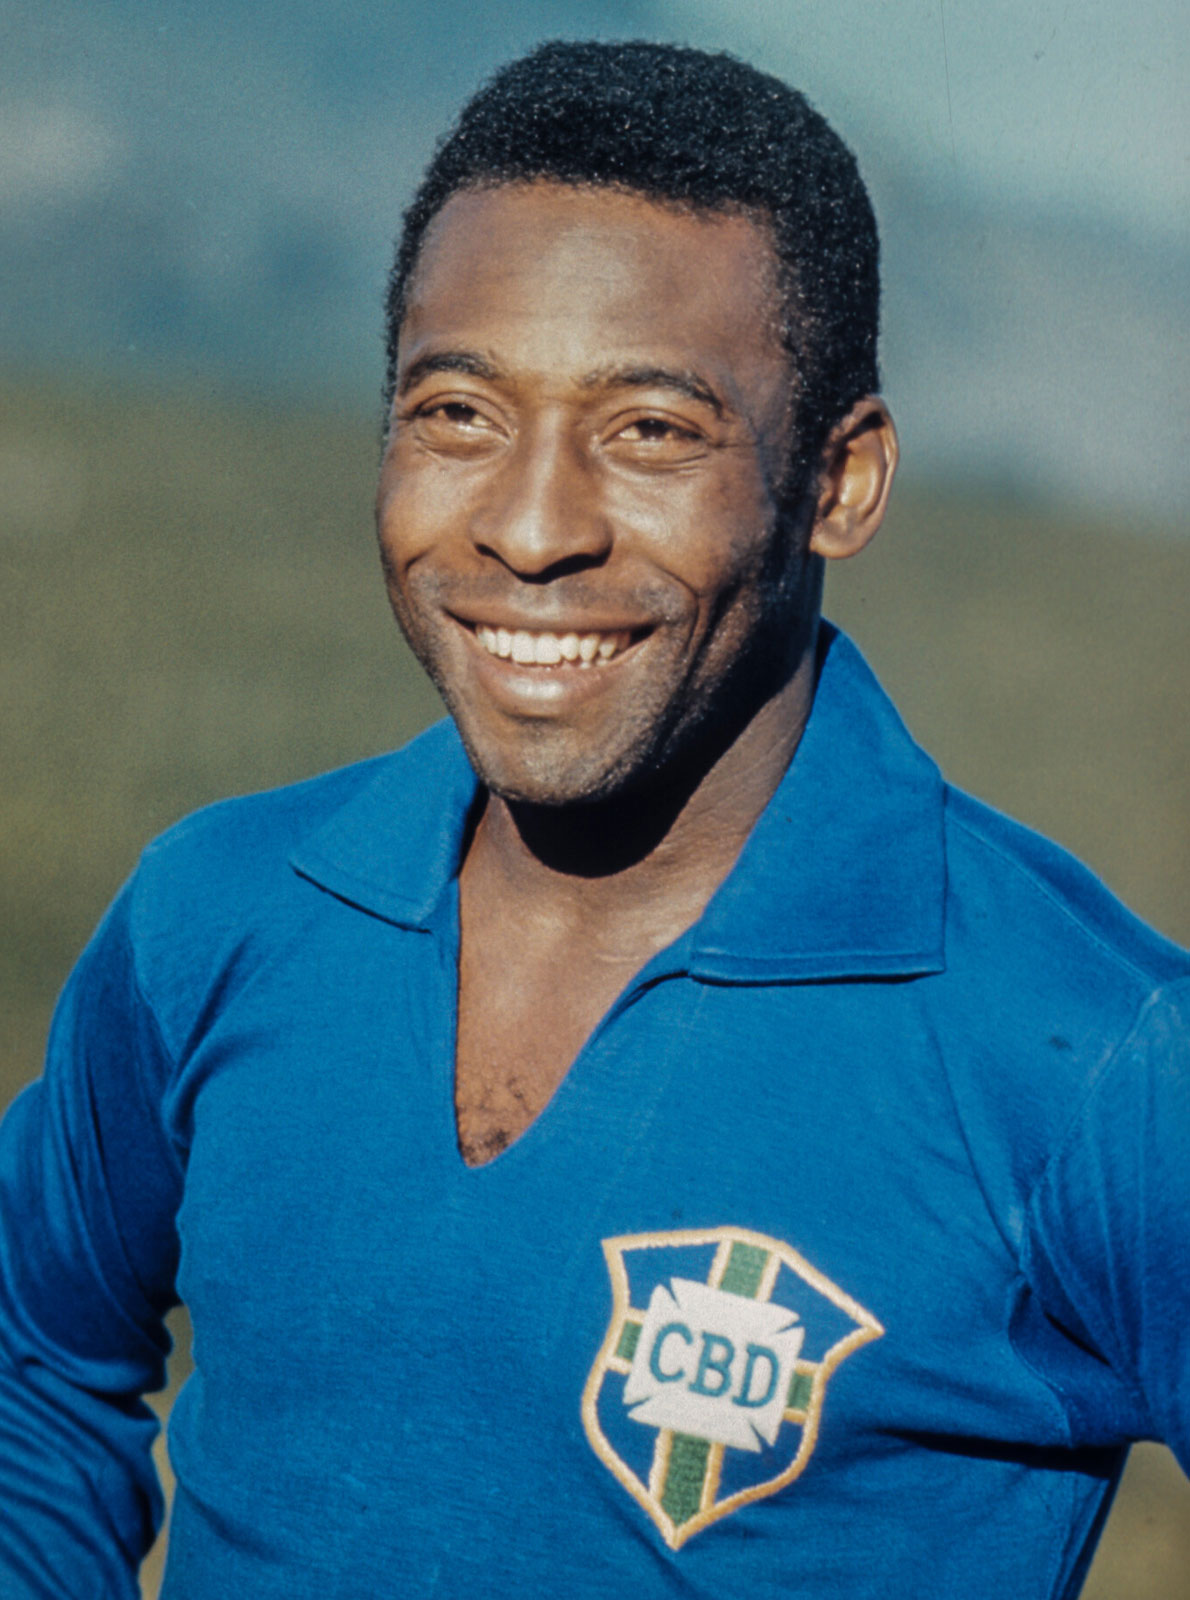 Pele Receives First Dose Of COVID-19 Vaccine